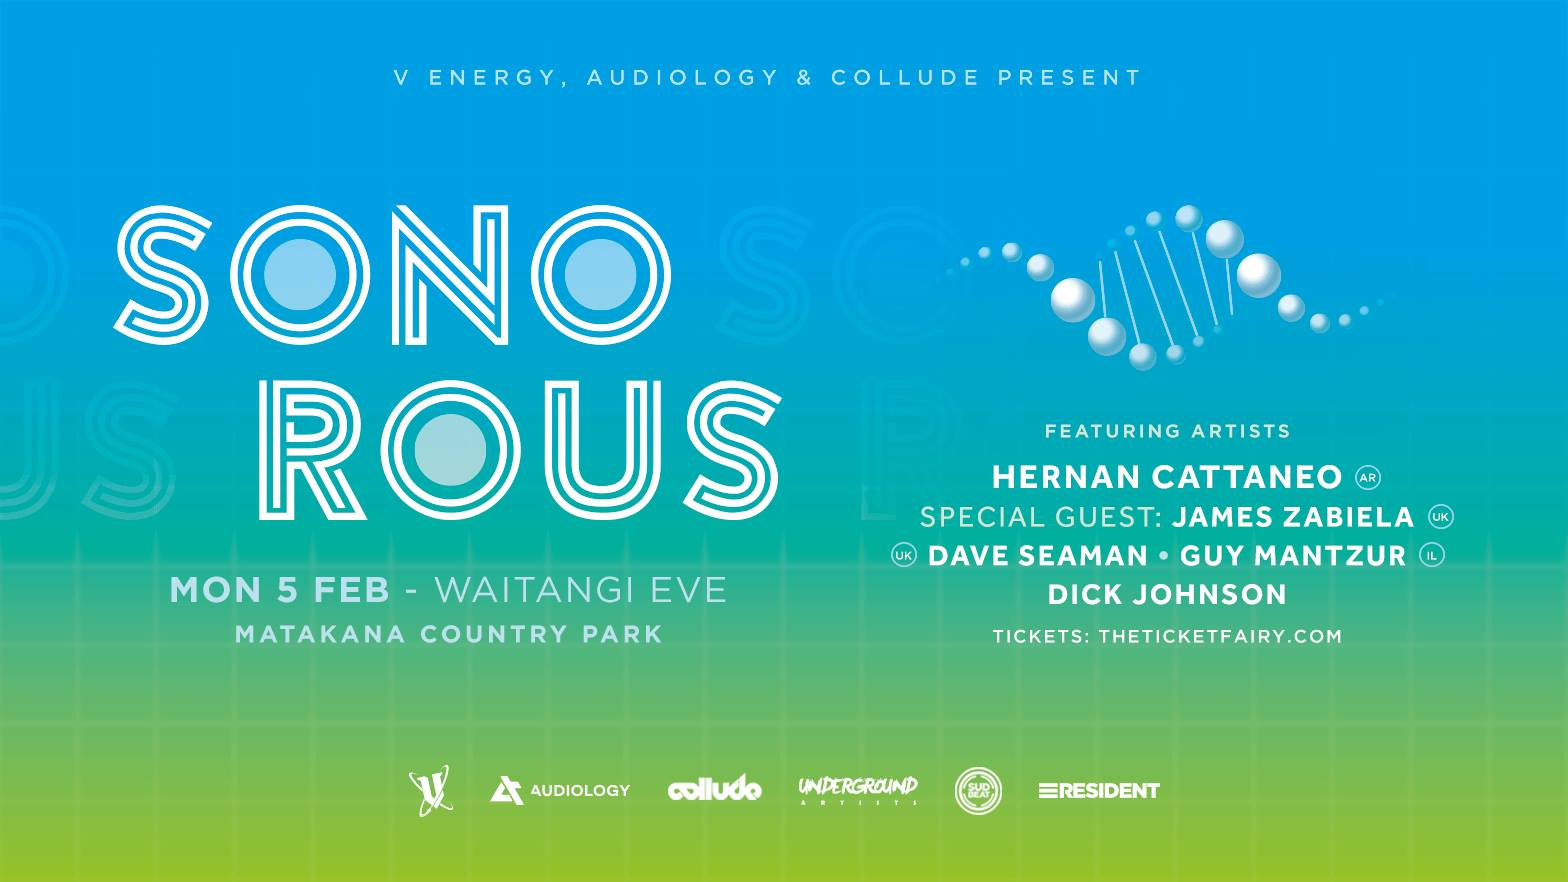 Sonorous Festival - Hernan Cattaneo, James Zabiela and More